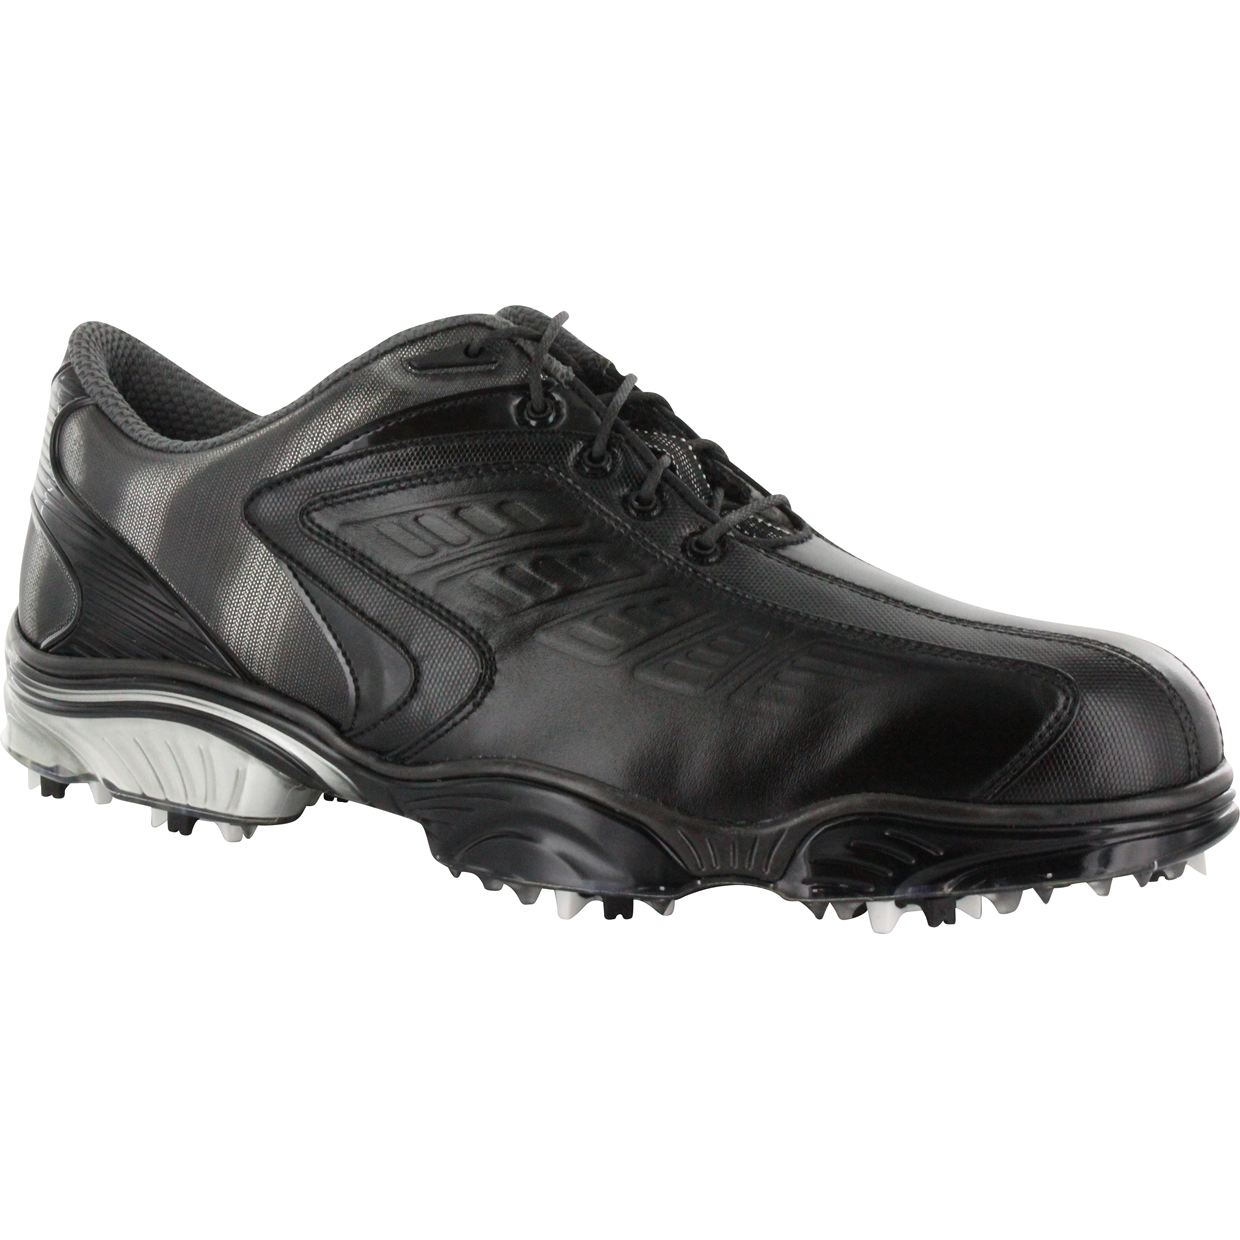 Fj Golf Shoe Sales